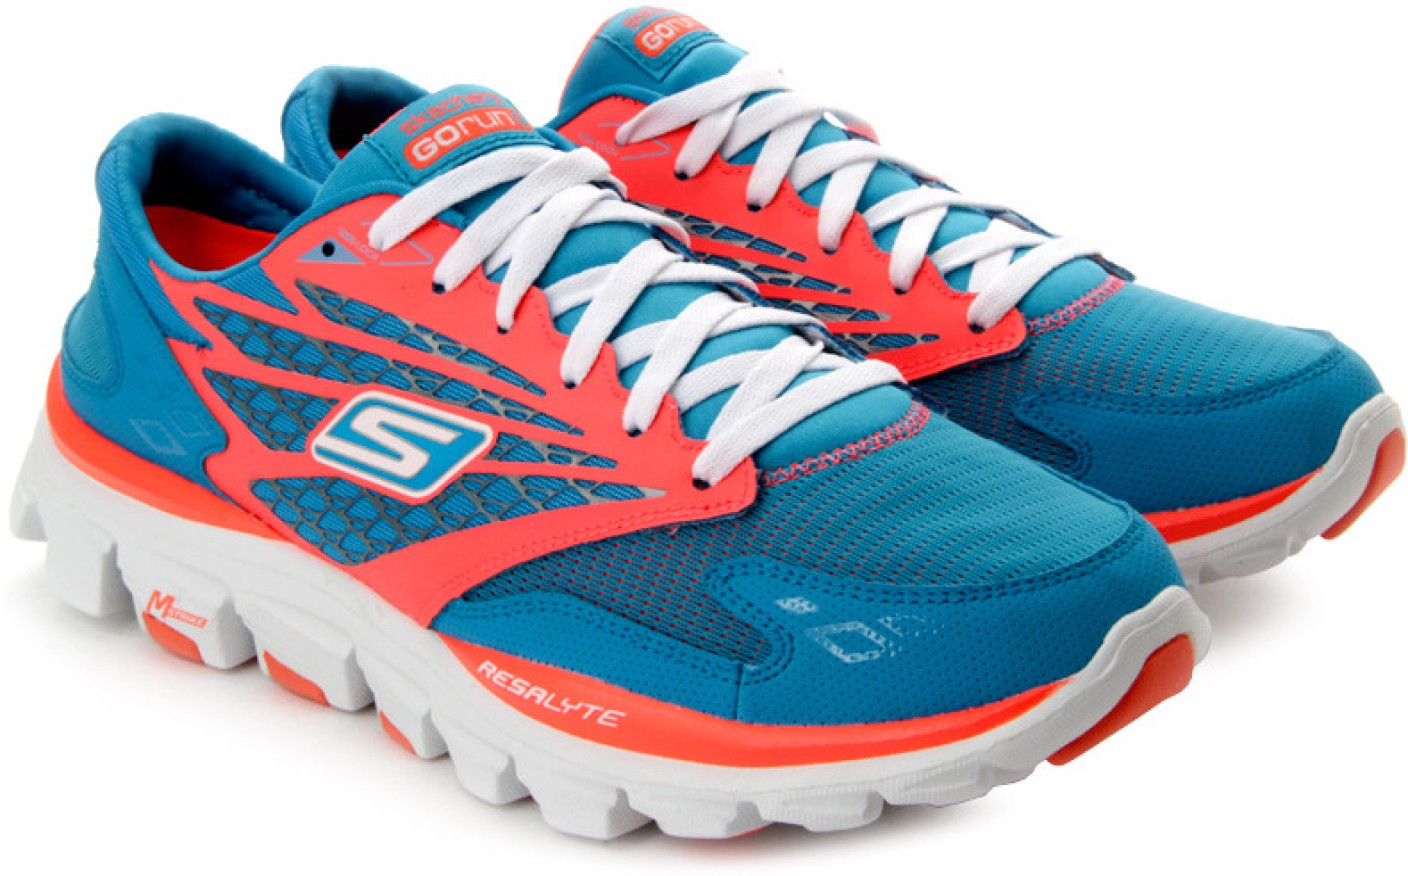 Skechers - Buy Skechers Footwear for men, women & kids online on Myntra. Shop for casual shoes, flip flops, sneakers & more in India. Easy Returns COD Buy wide range of Skechers footwear for men & women online in India.